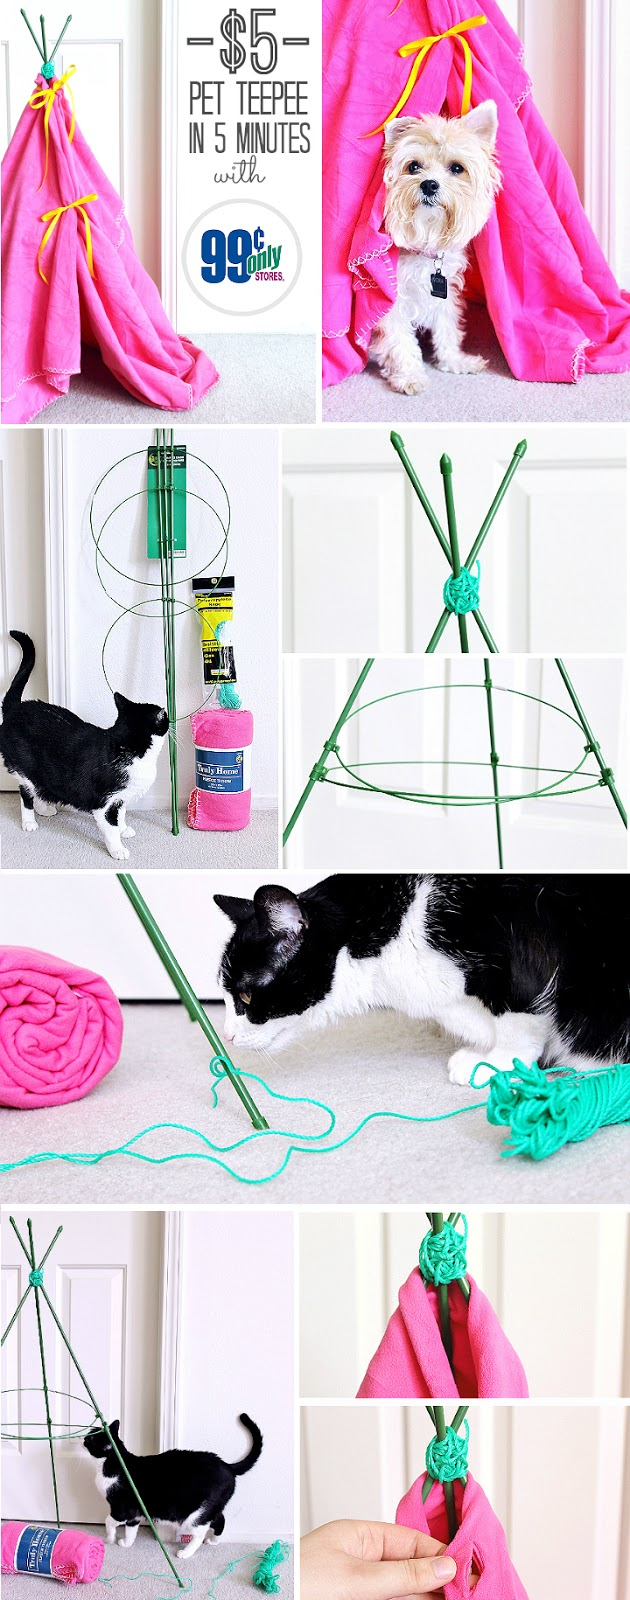 $5 No Skill Needed Kitty Teepee- Great for small dogs or kids' dolls! Celebrate Easter with your pets with you shop at 99 Cents Only Stores. Shop adorable Easter baskets and decor, and grab supplies for affordable D.I.Y pet toys! #99YourEaster #DoThe99 #DoingThe99 #AD